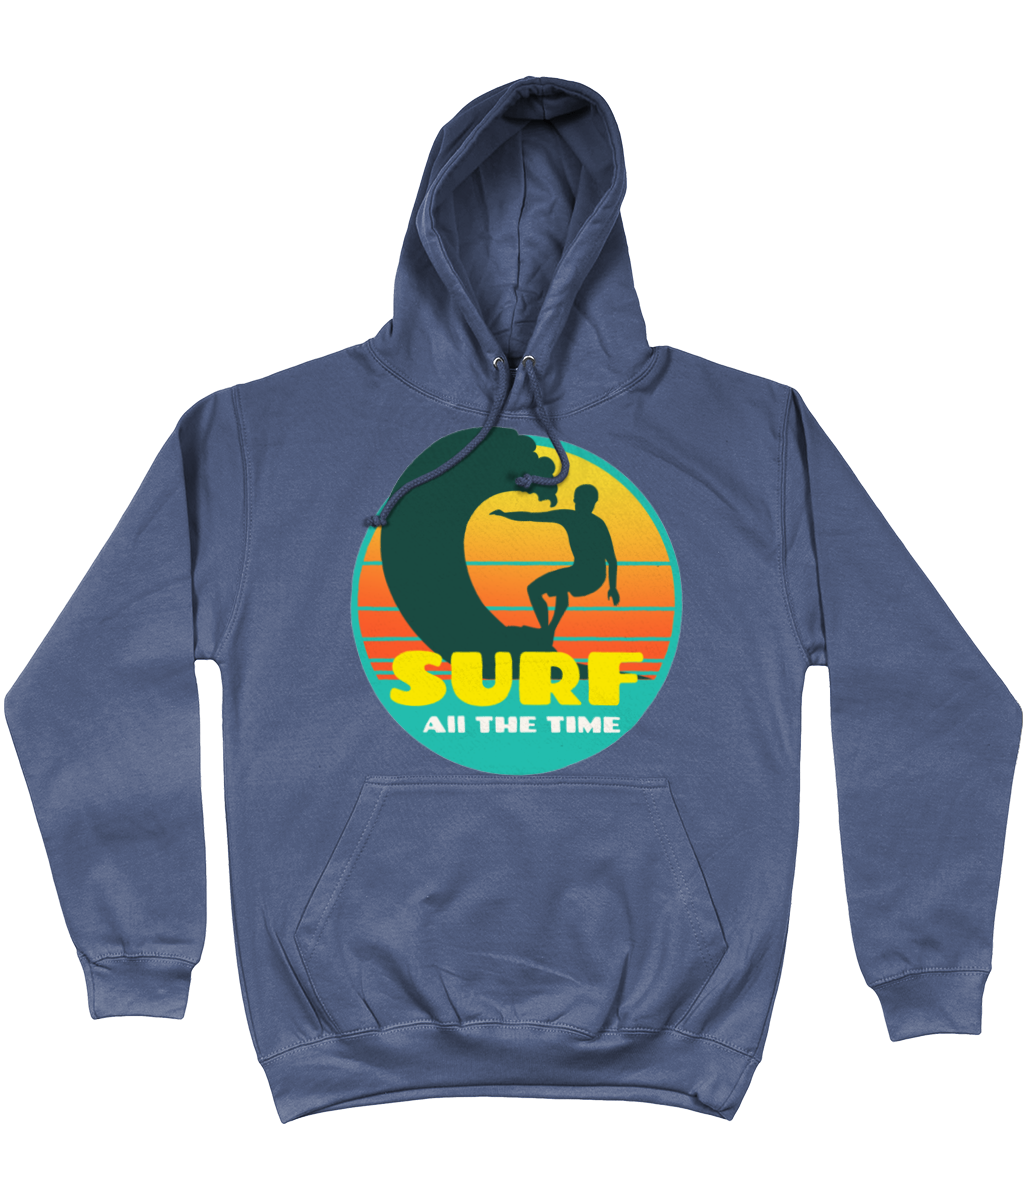 Retro Surf All the Time Hoodie